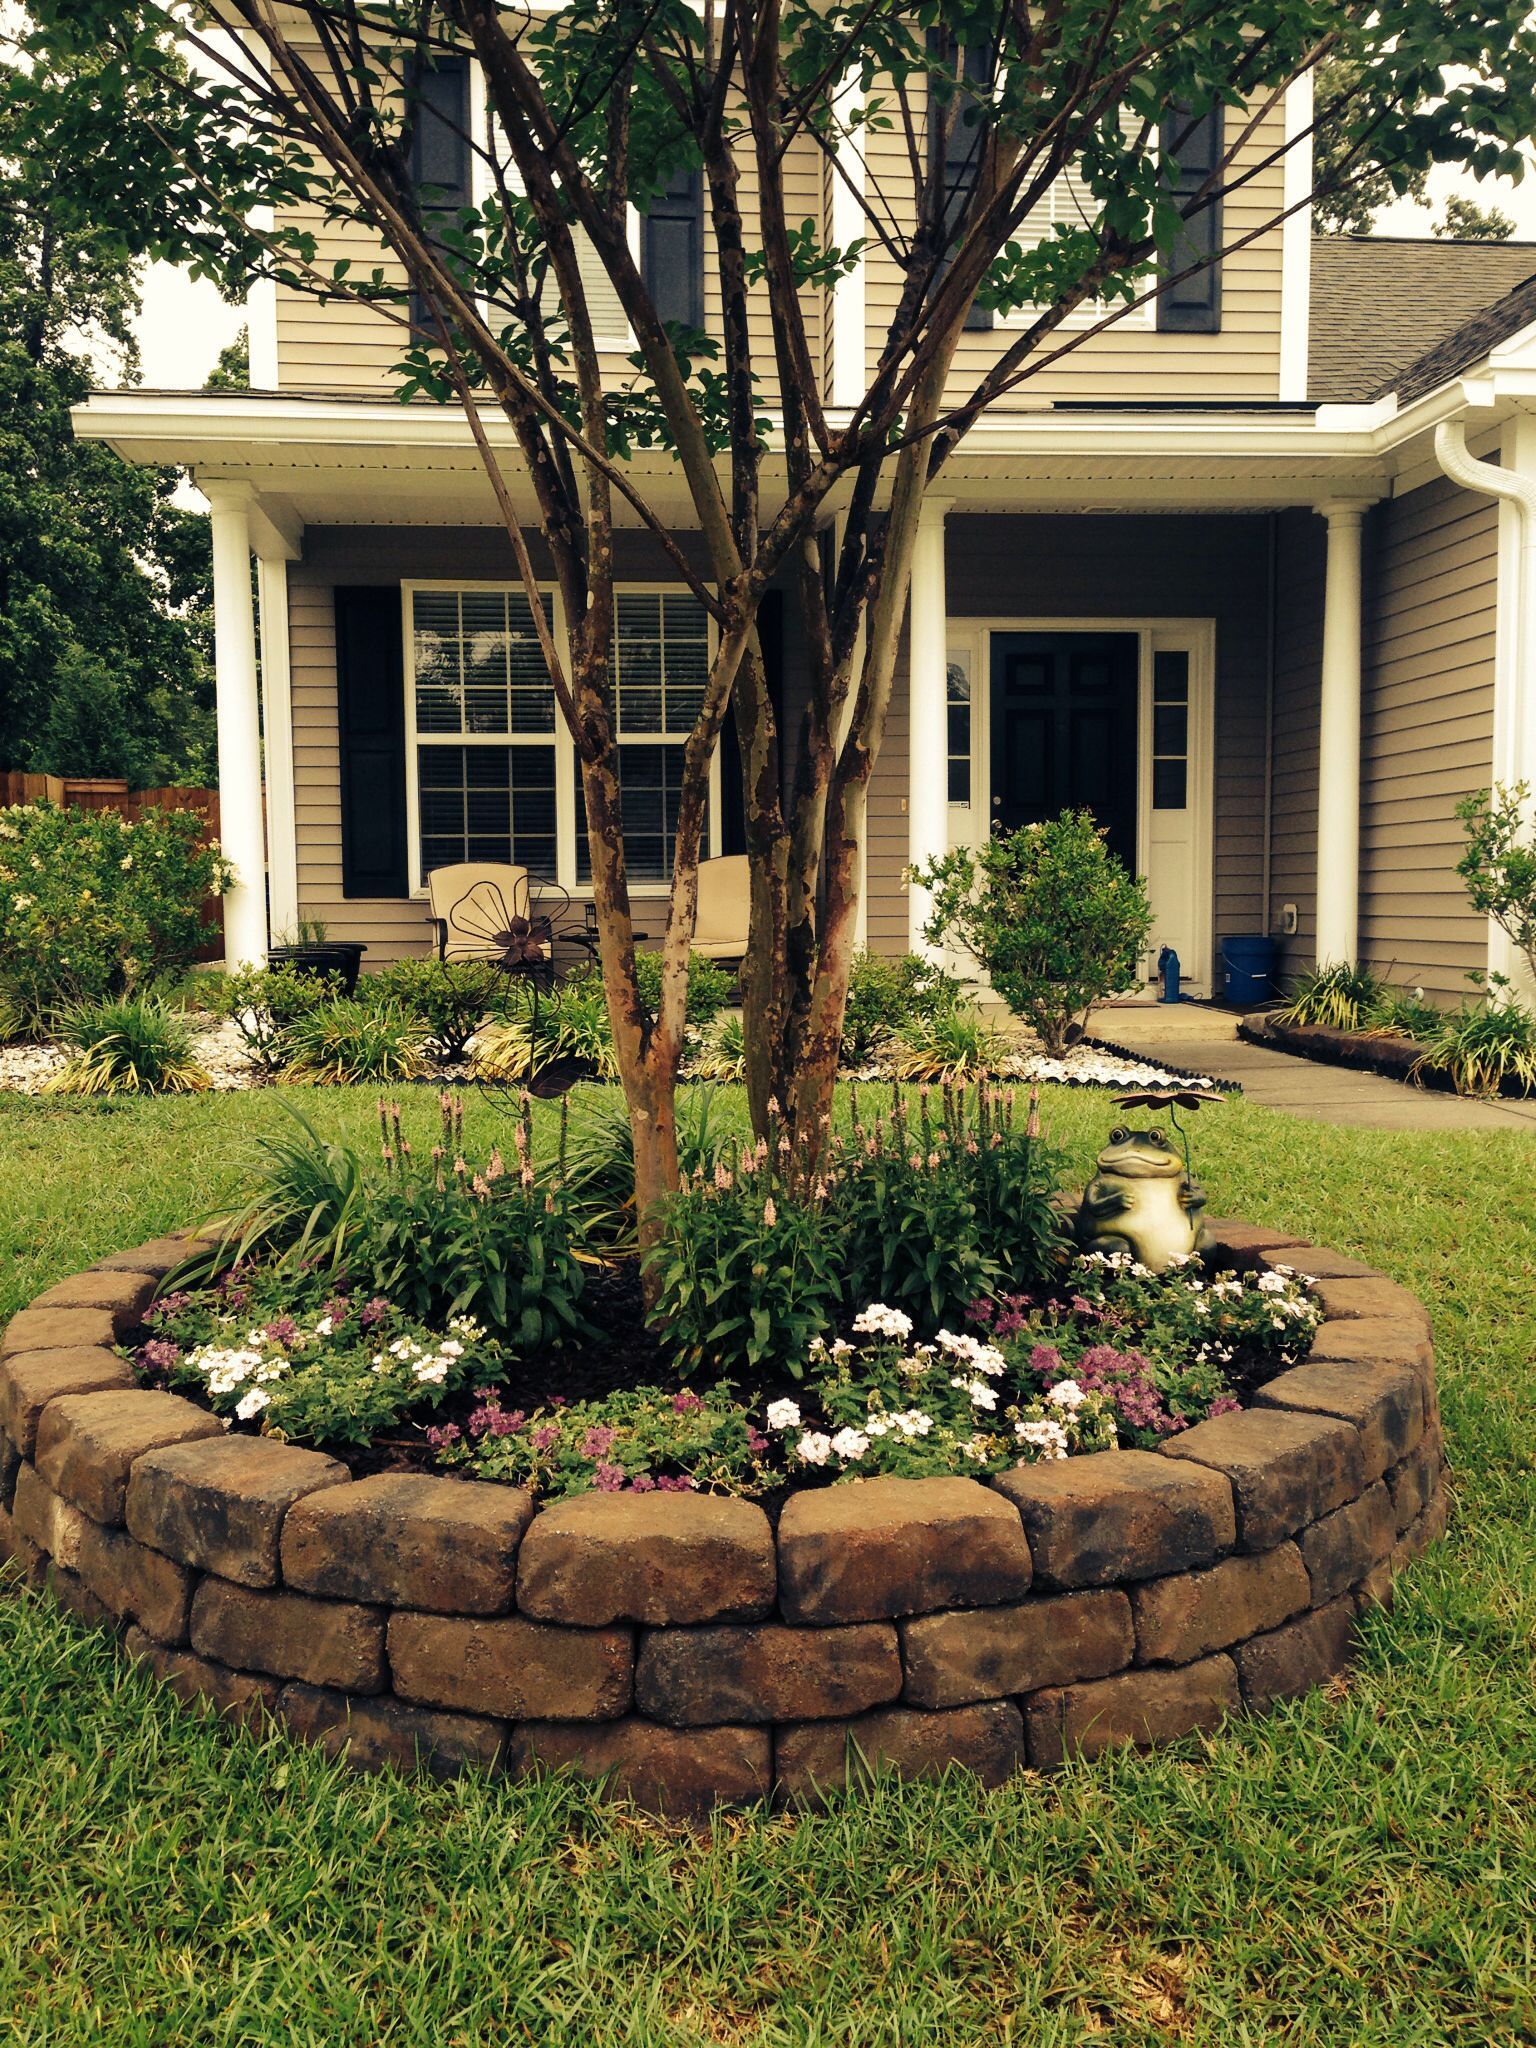 How to build a brick flower bed around a tree